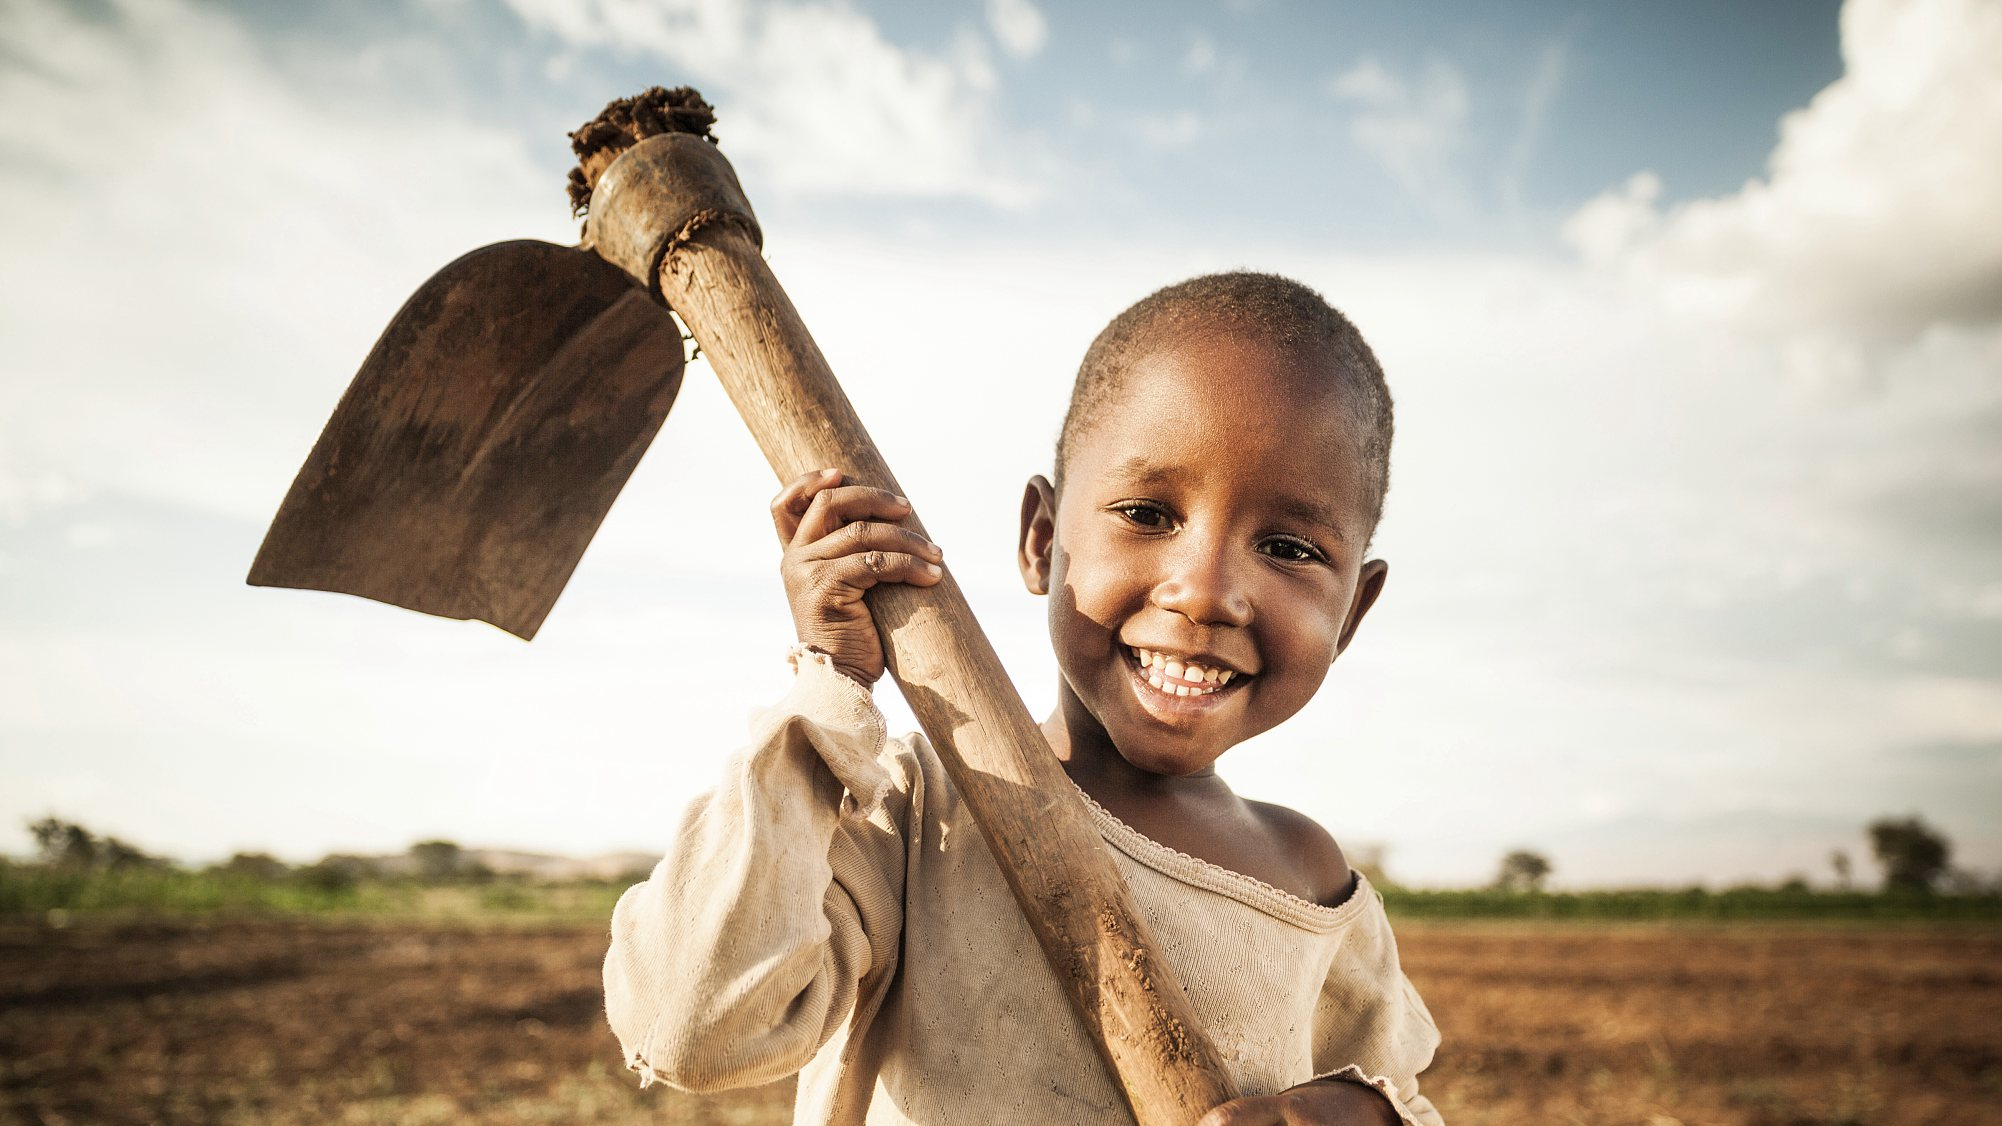 What can Africa learn from China's poverty reduction achievements?